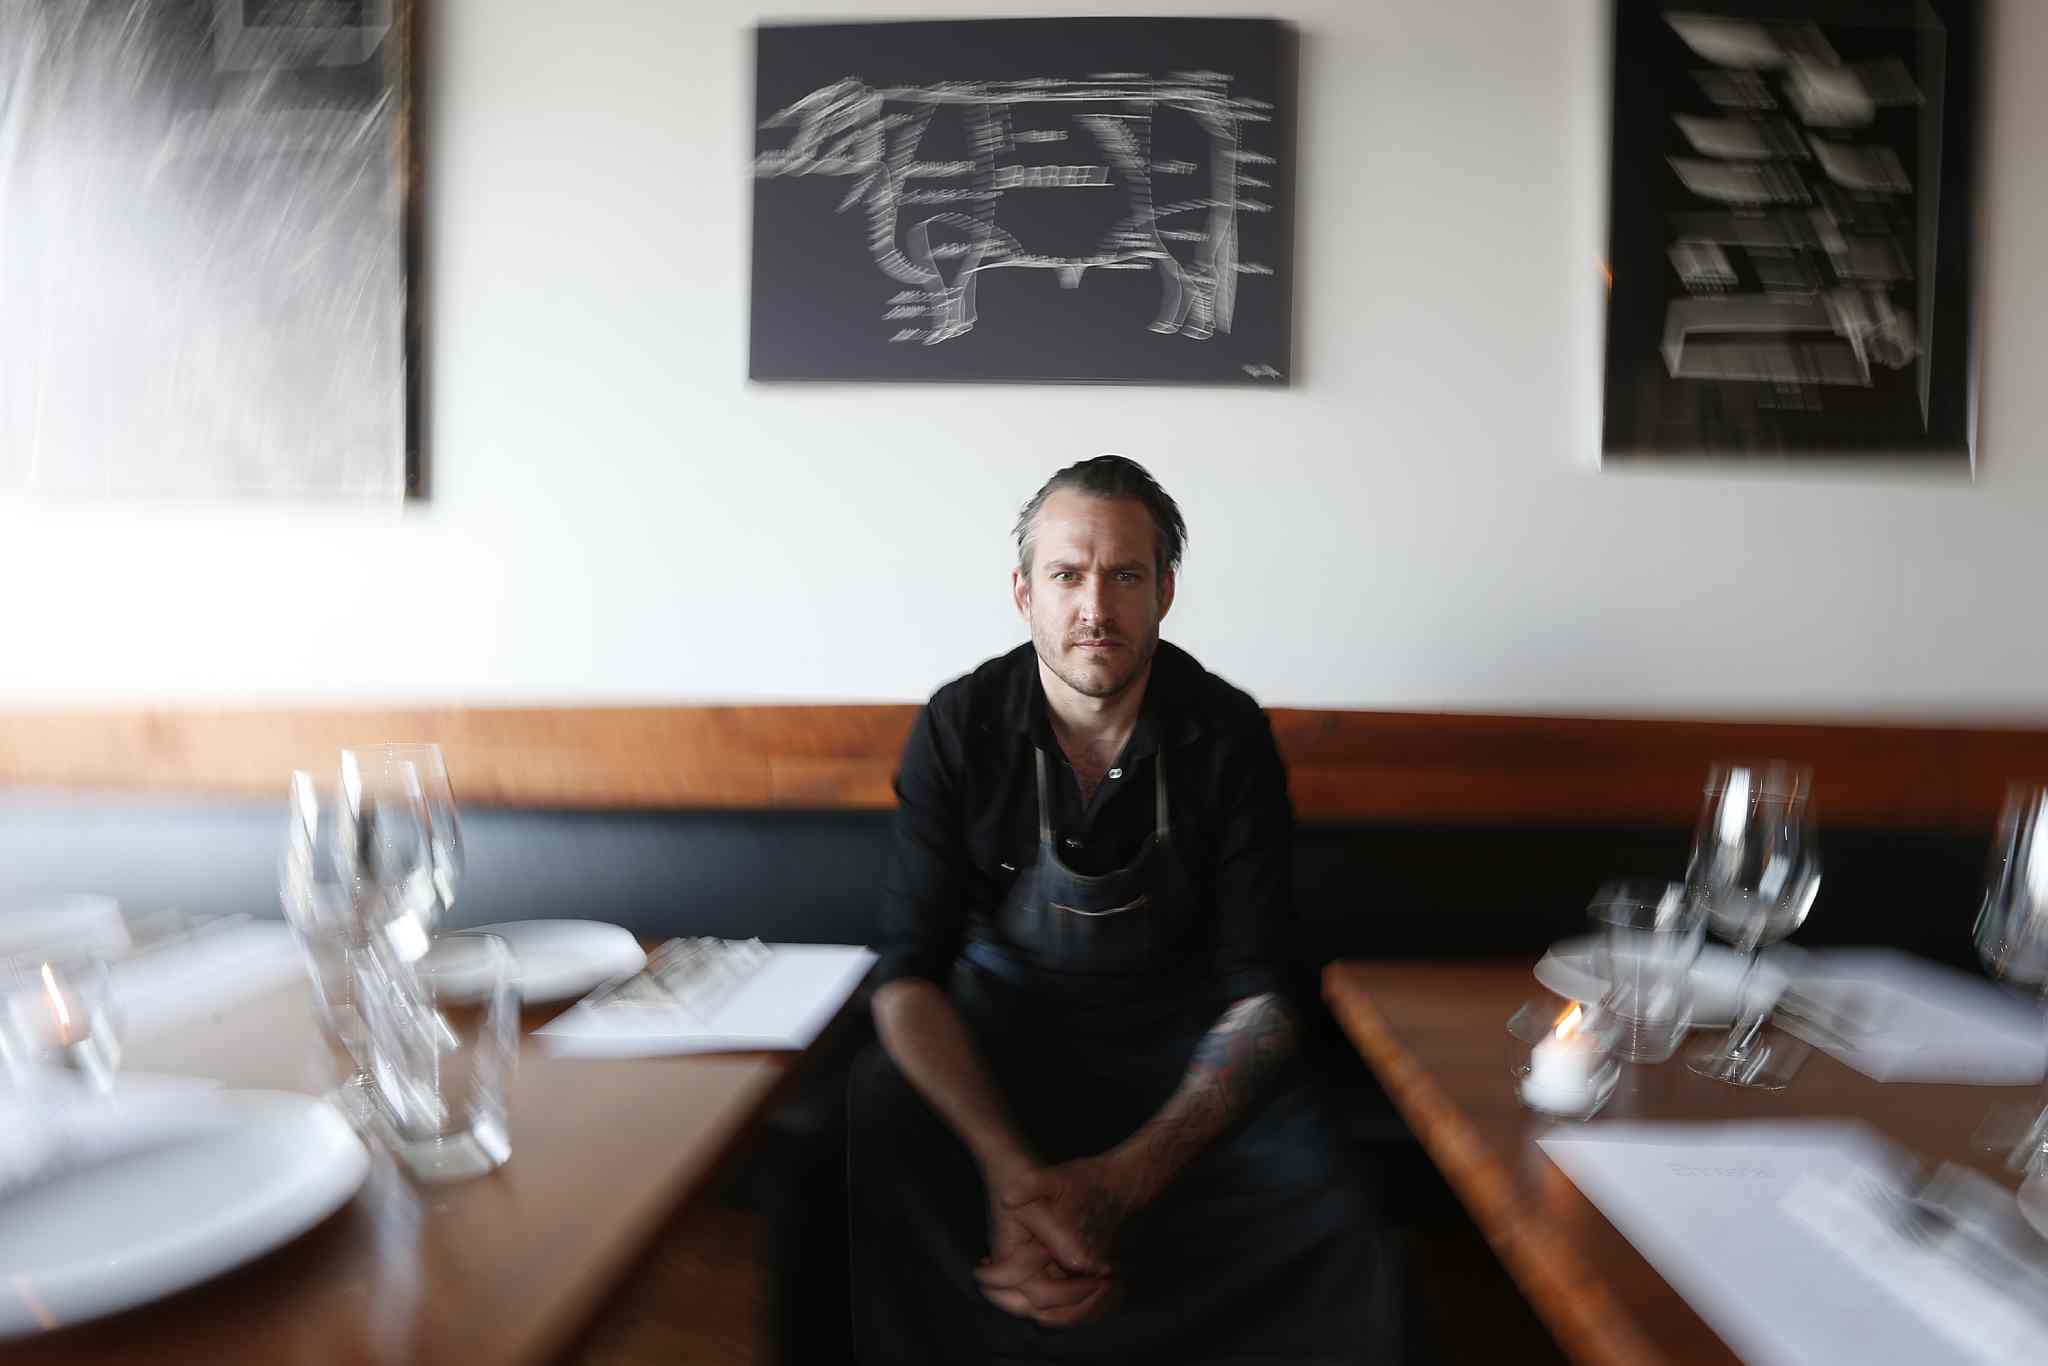 Scott Bagshaw, owner of Enoteca, in his new restaurant.